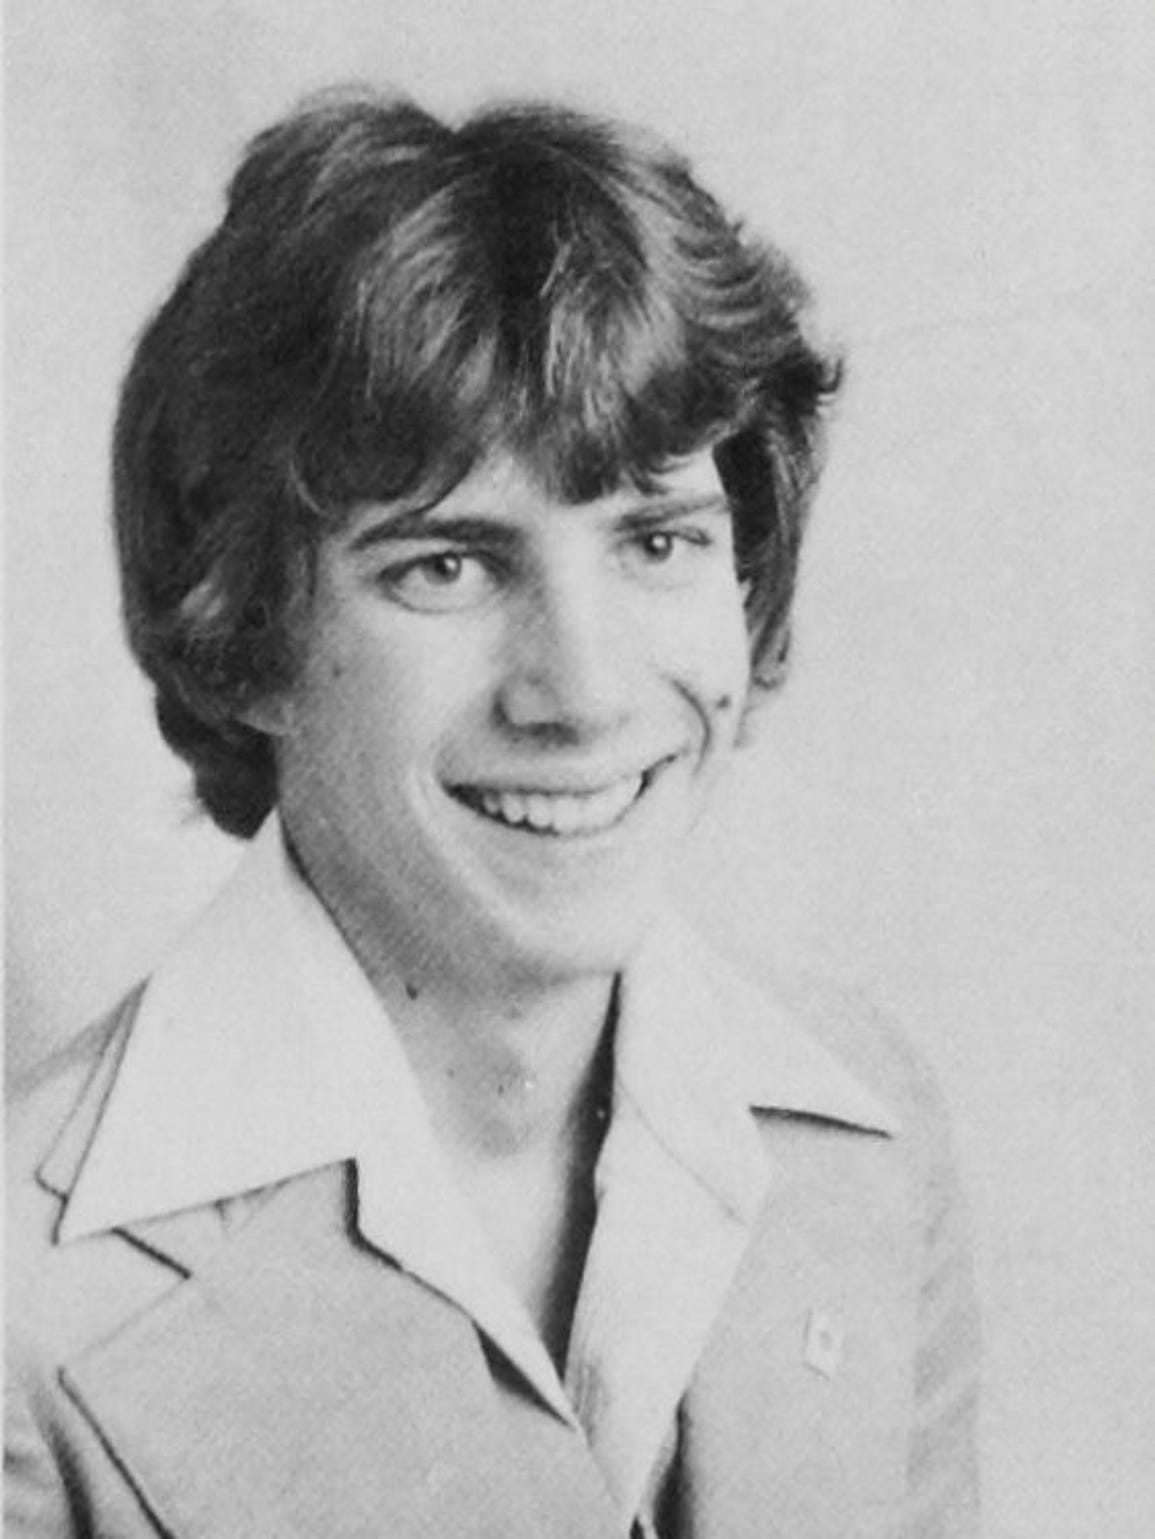 Gordon Ray Church in his 1978 Cedar High School yearbook